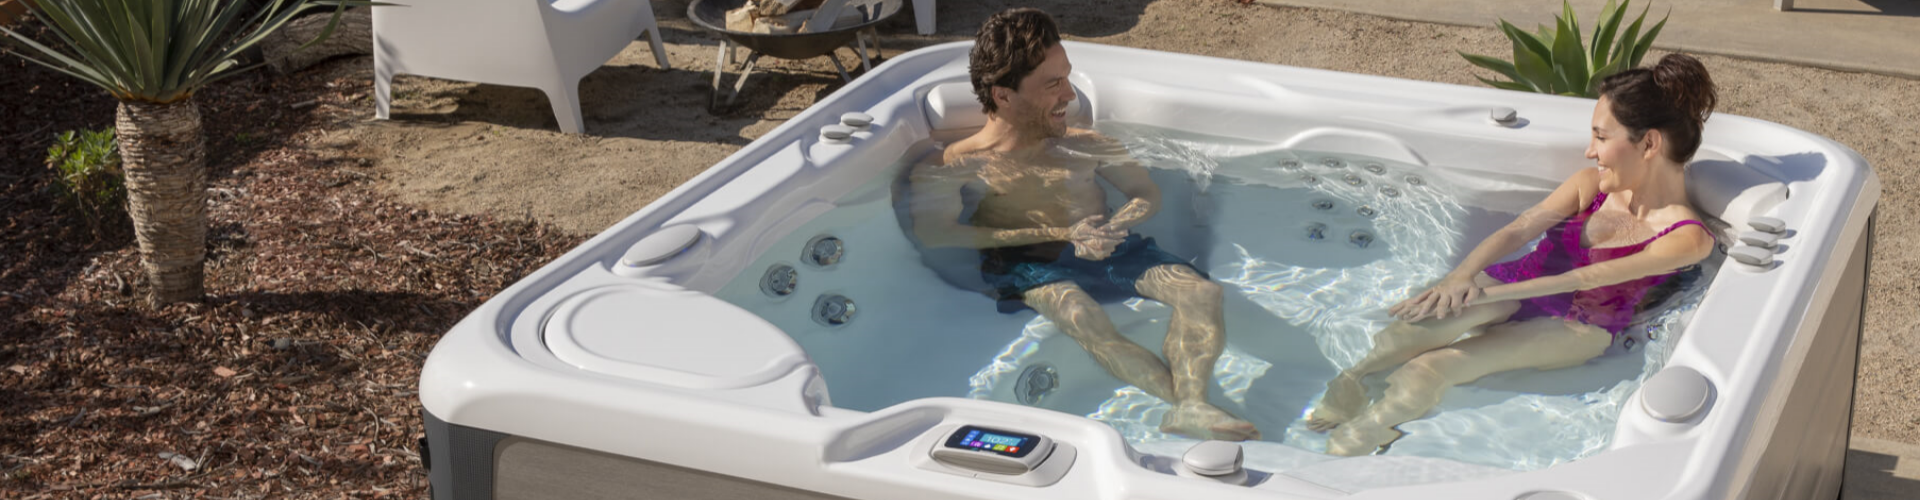 How to Make Your Spa More Energy Efficient